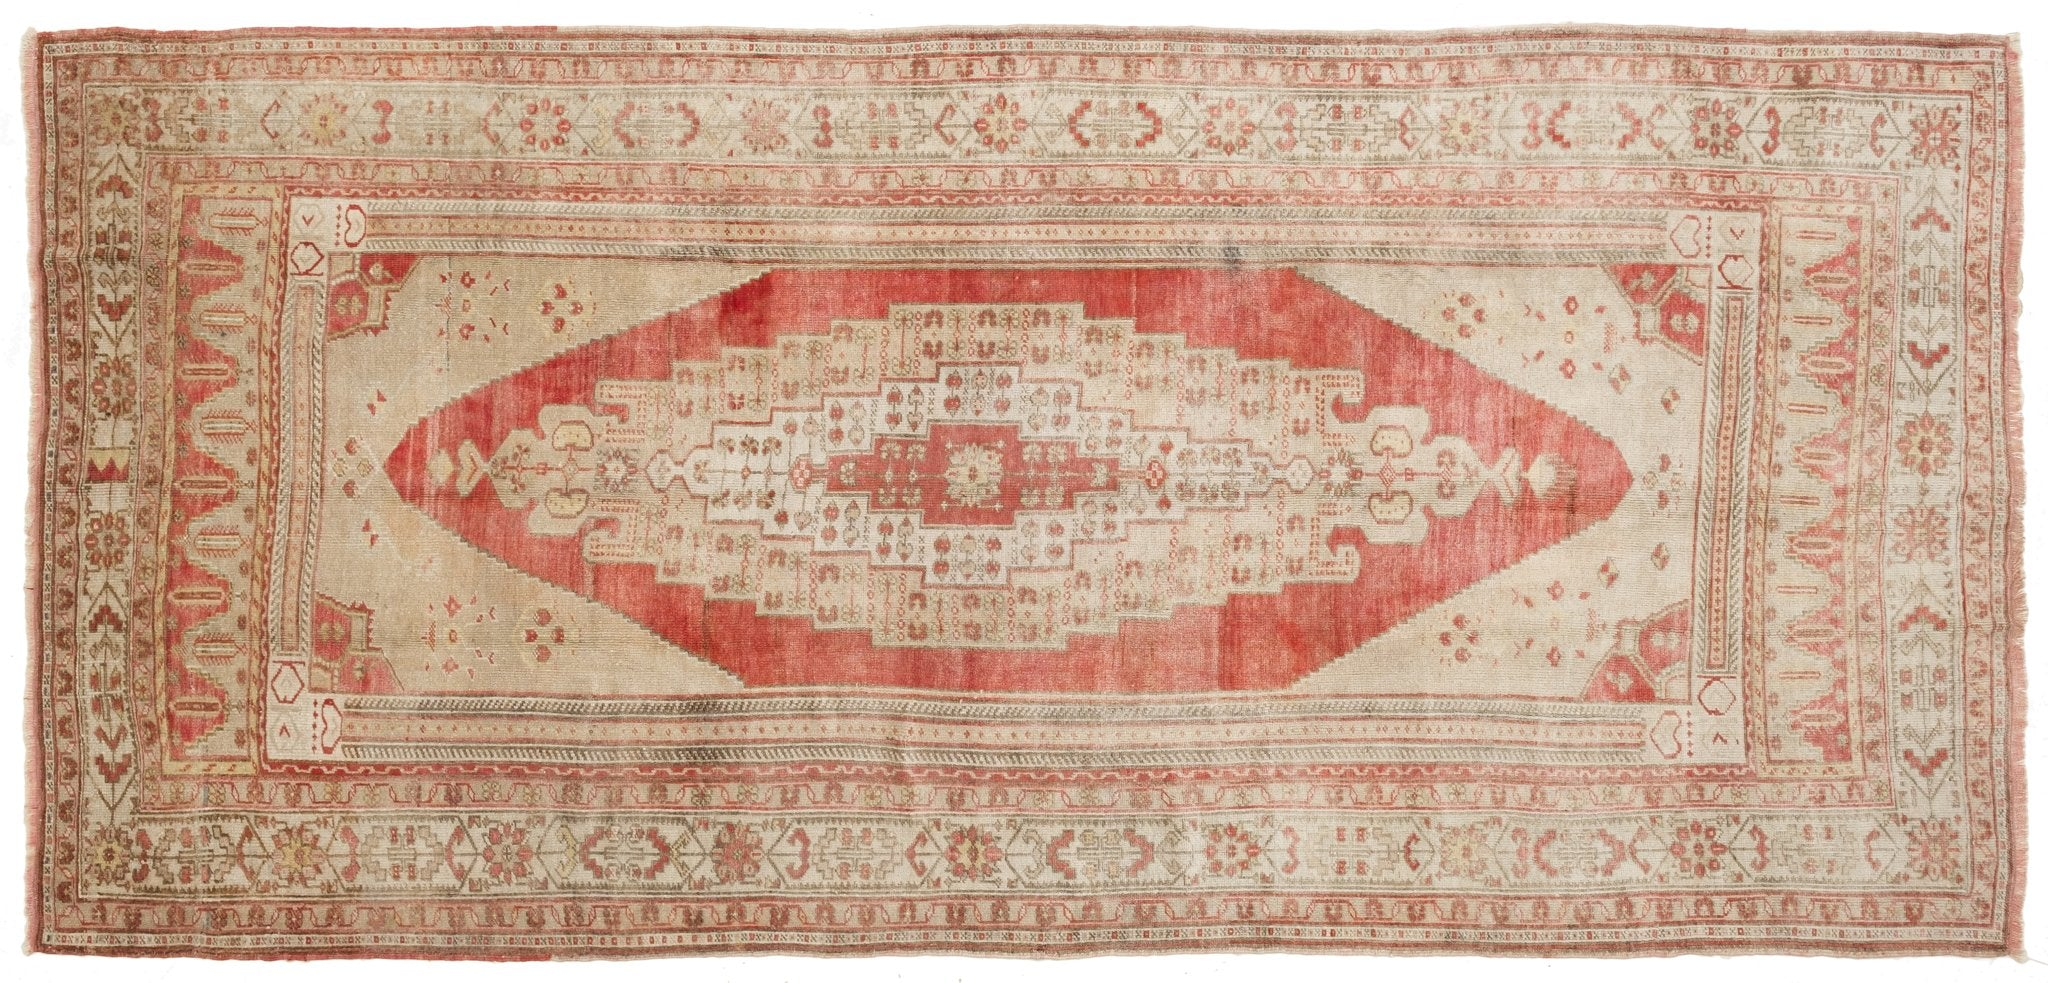 Vintage Turkish Rug Anasztazia